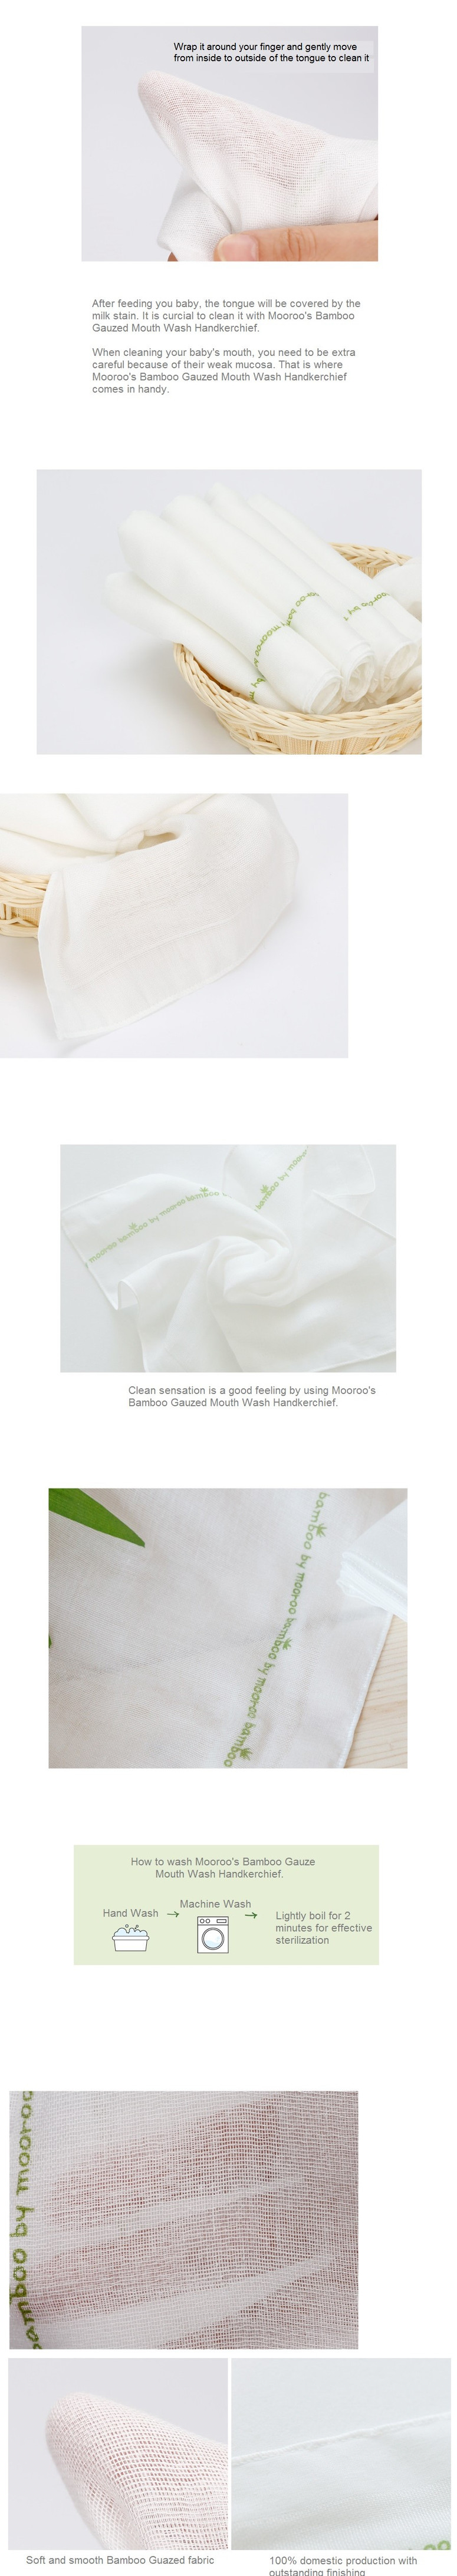 Bamboo Mouth Handkerchief 1-3.jpg